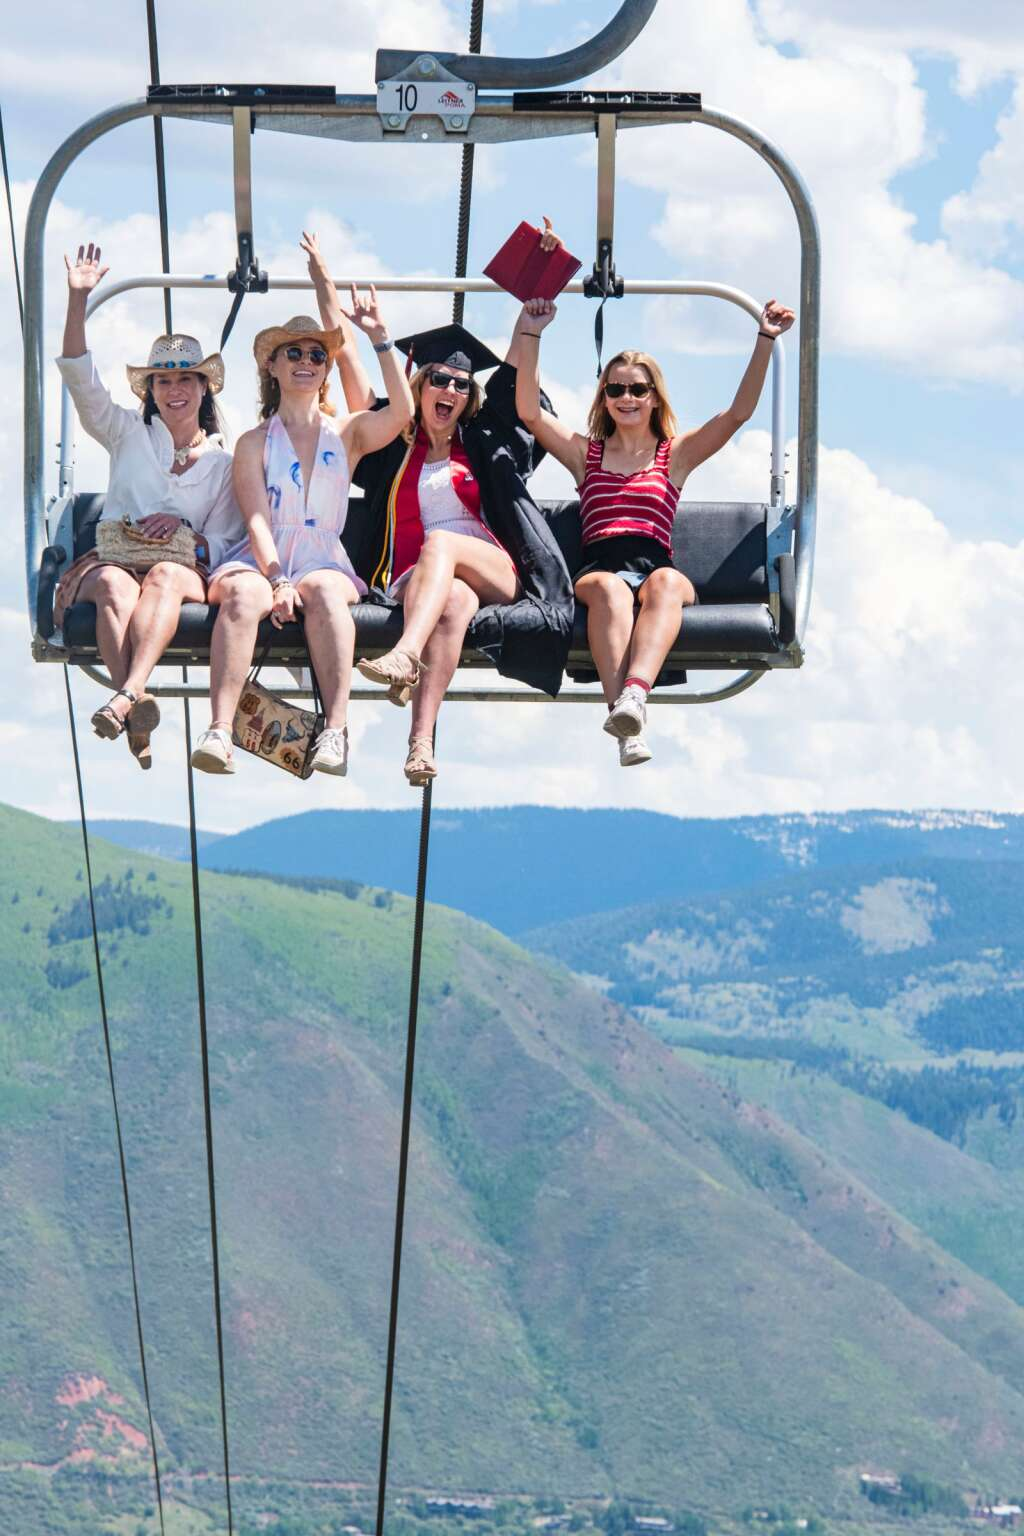 An Aspen High School graduate and her family ride the Tiehack Life to the top of Buttermilk after the 2021 commencement ceremony at the school in Aspen on Saturday, June 5, 2021. (Kelsey Brunner/The Aspen Times)